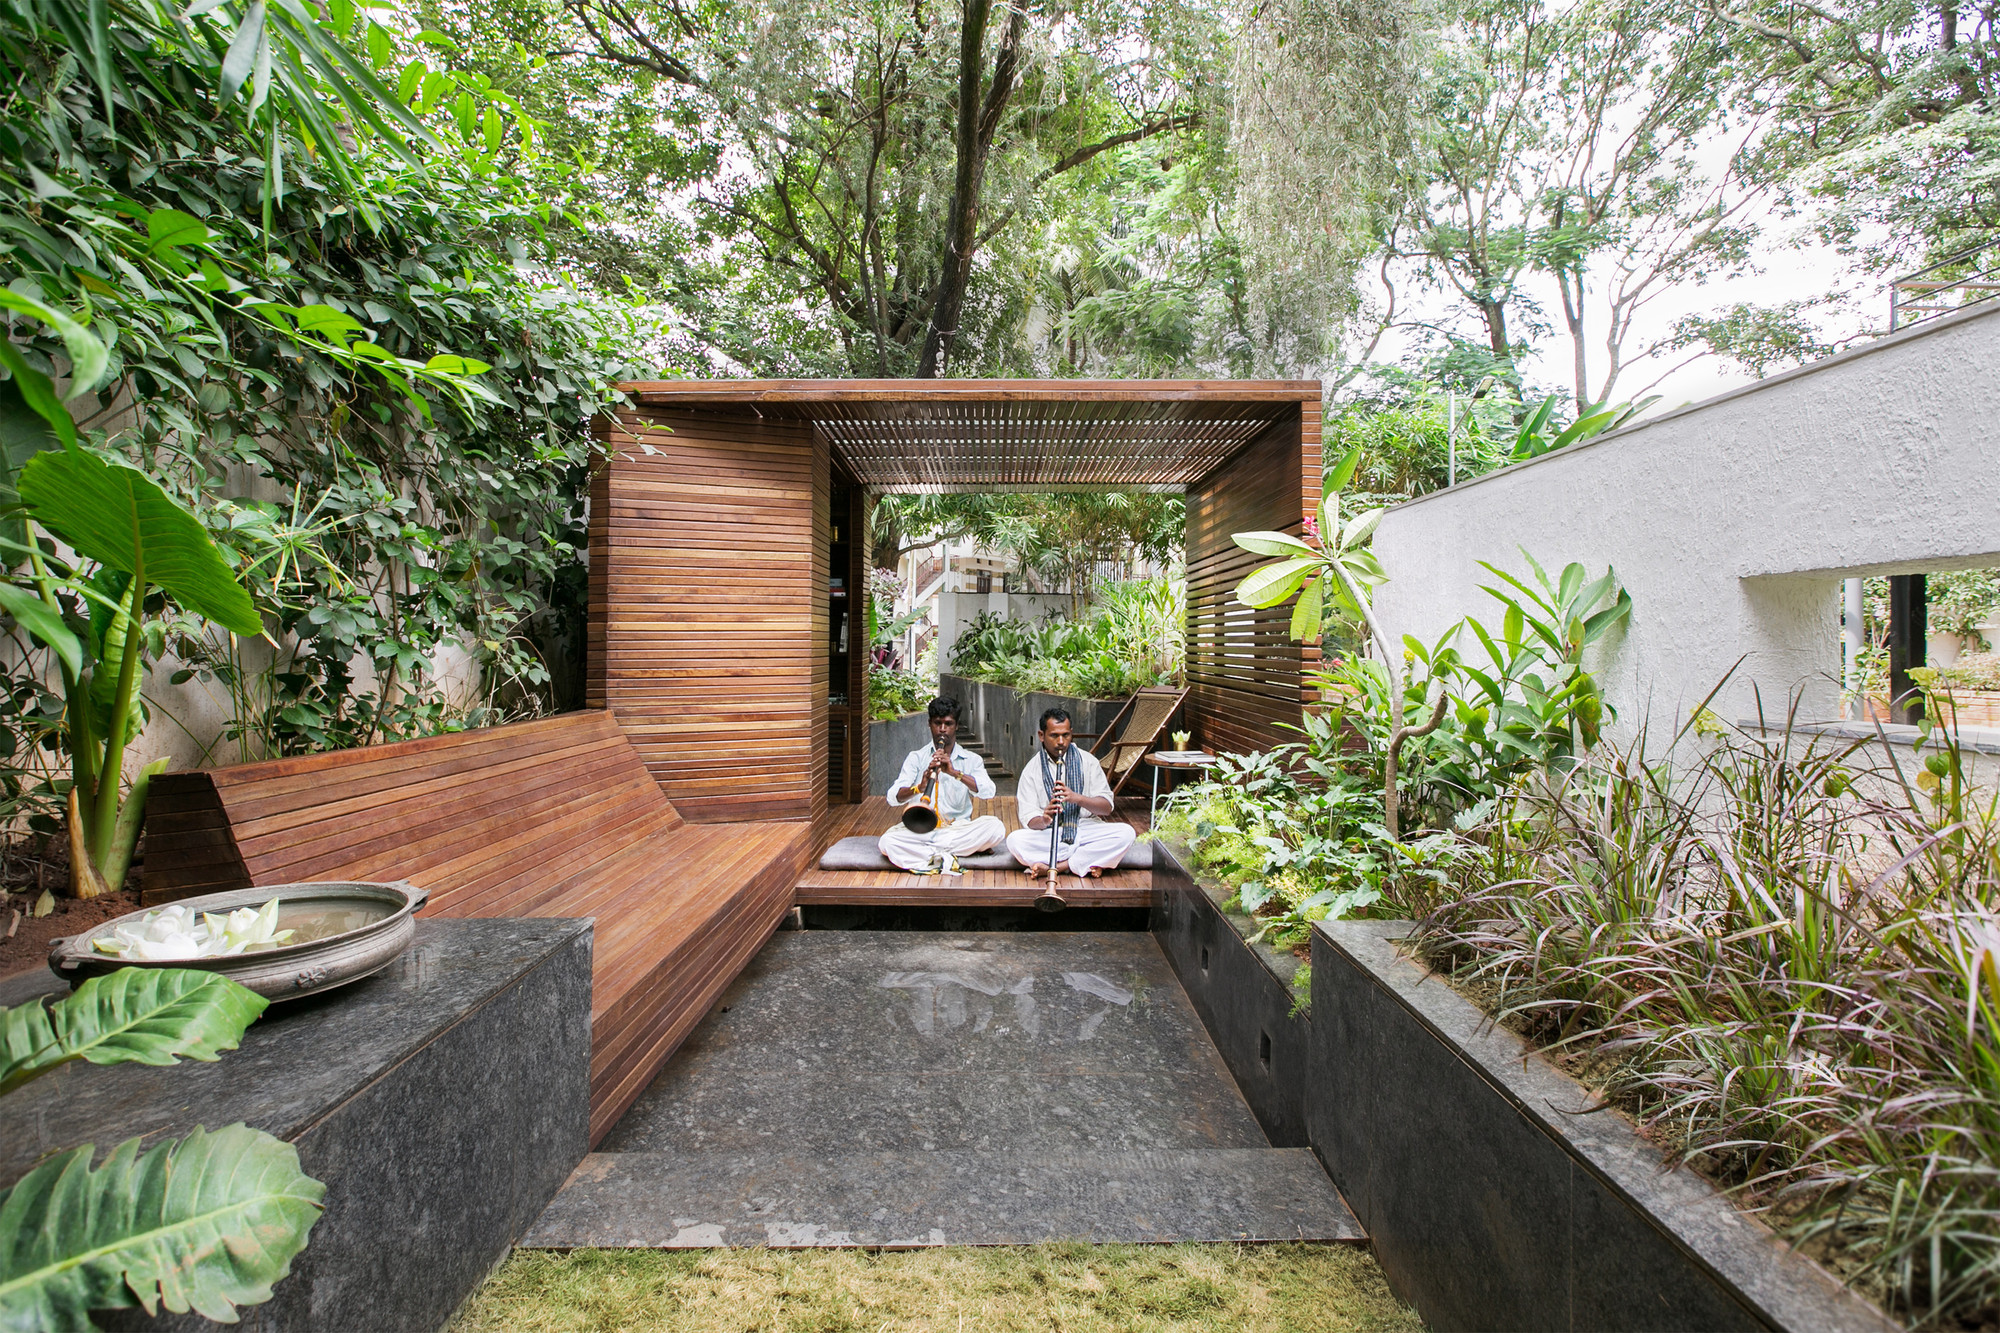 Architectural Design Ideas For Garden: Pavilion In A Garden By Collective  Project, India